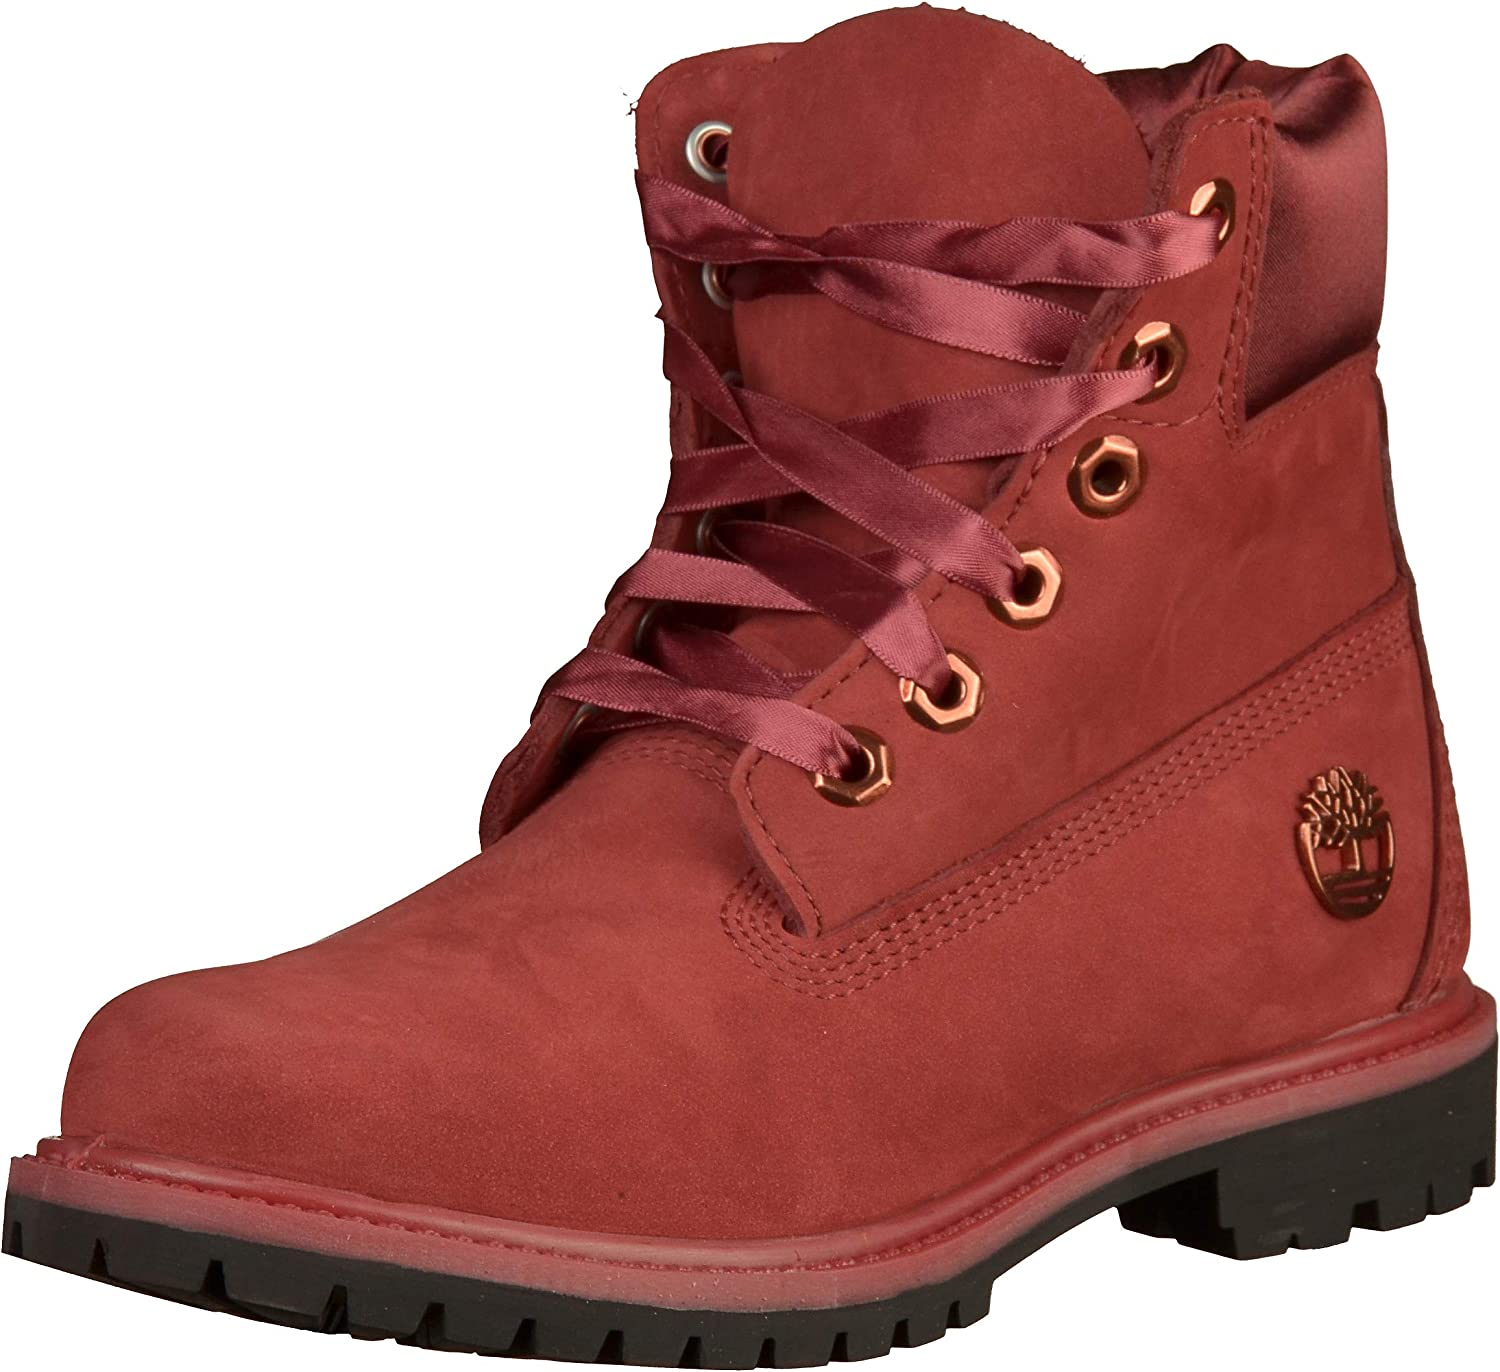 Timberland A1SC7 6po Premium Rouge Chaussures Femme Chaussures Cuir Nubuck